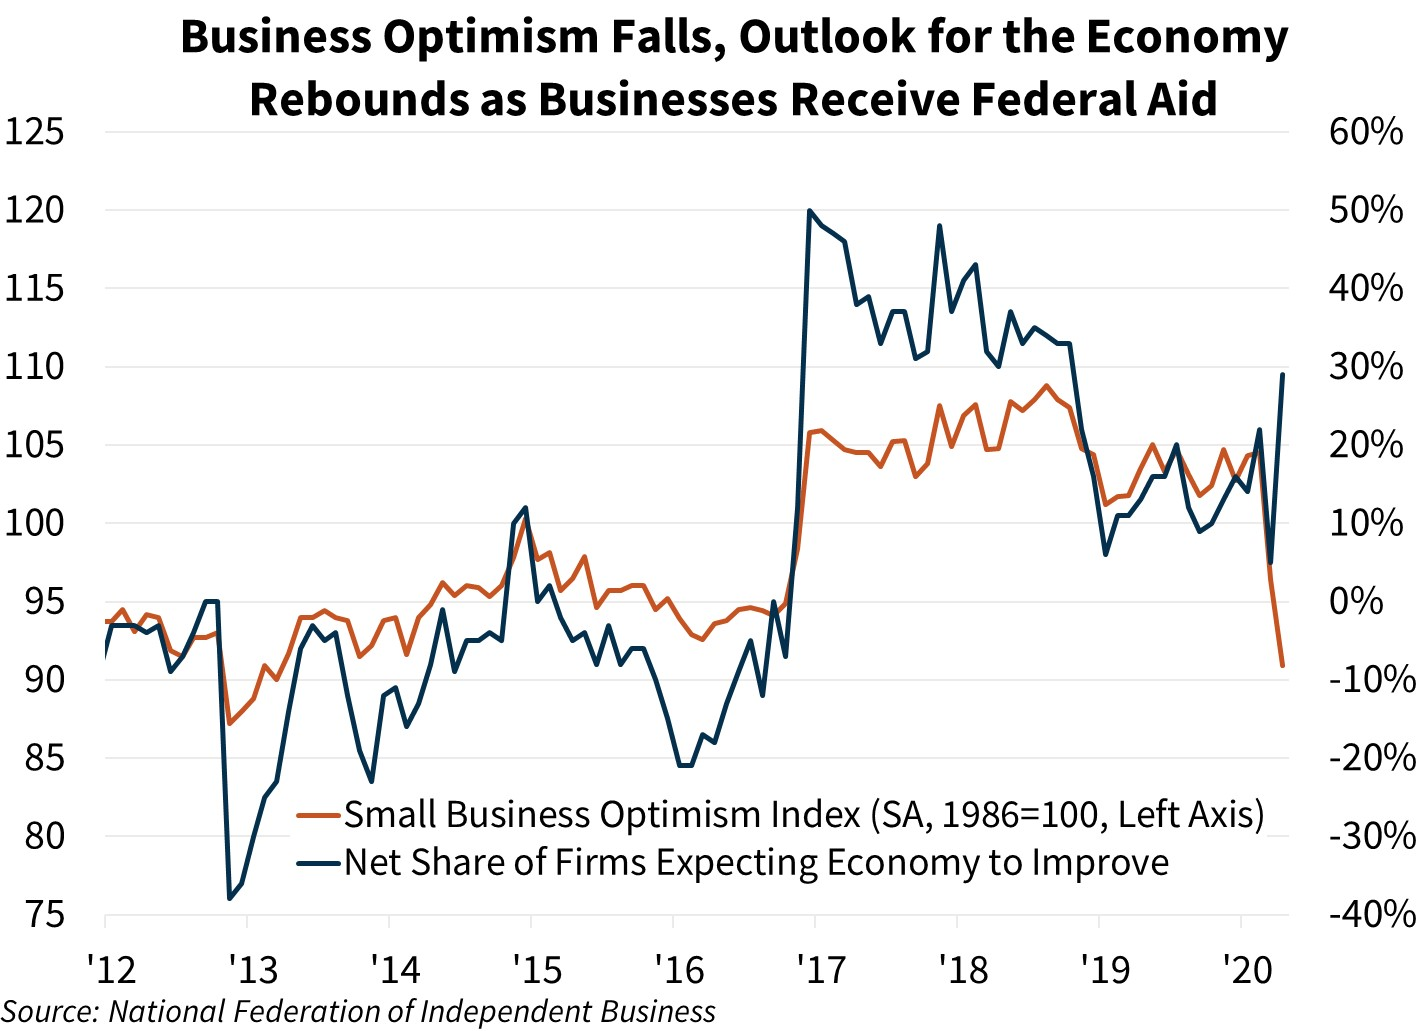 Business Optimism Falls, Outlook for the Economy Rebounds as Businesses Receive Federal Aid